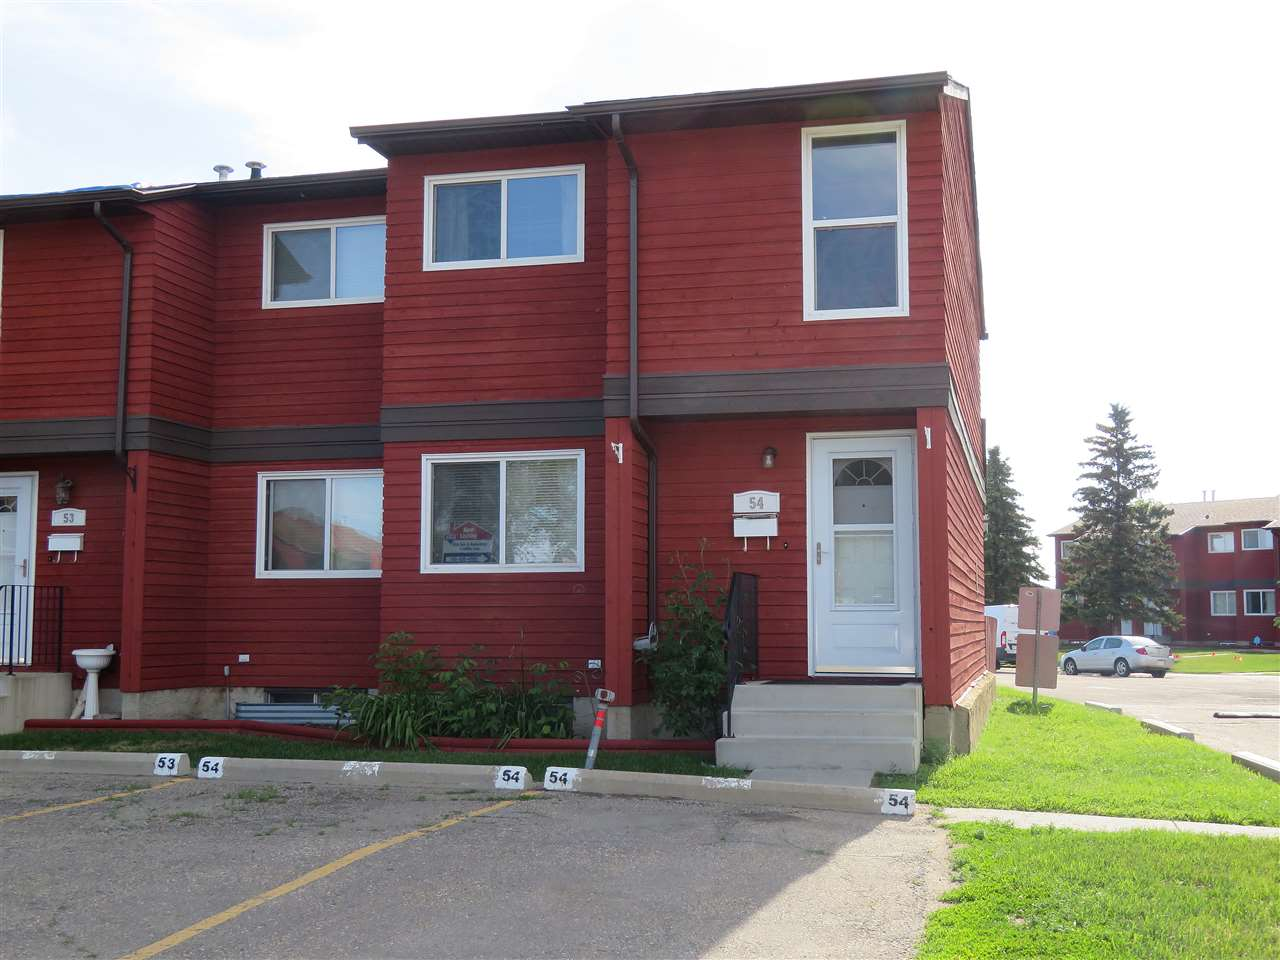 54 4707 126 Avenue NW, 3 bed, 1.1 bath, at $199,800